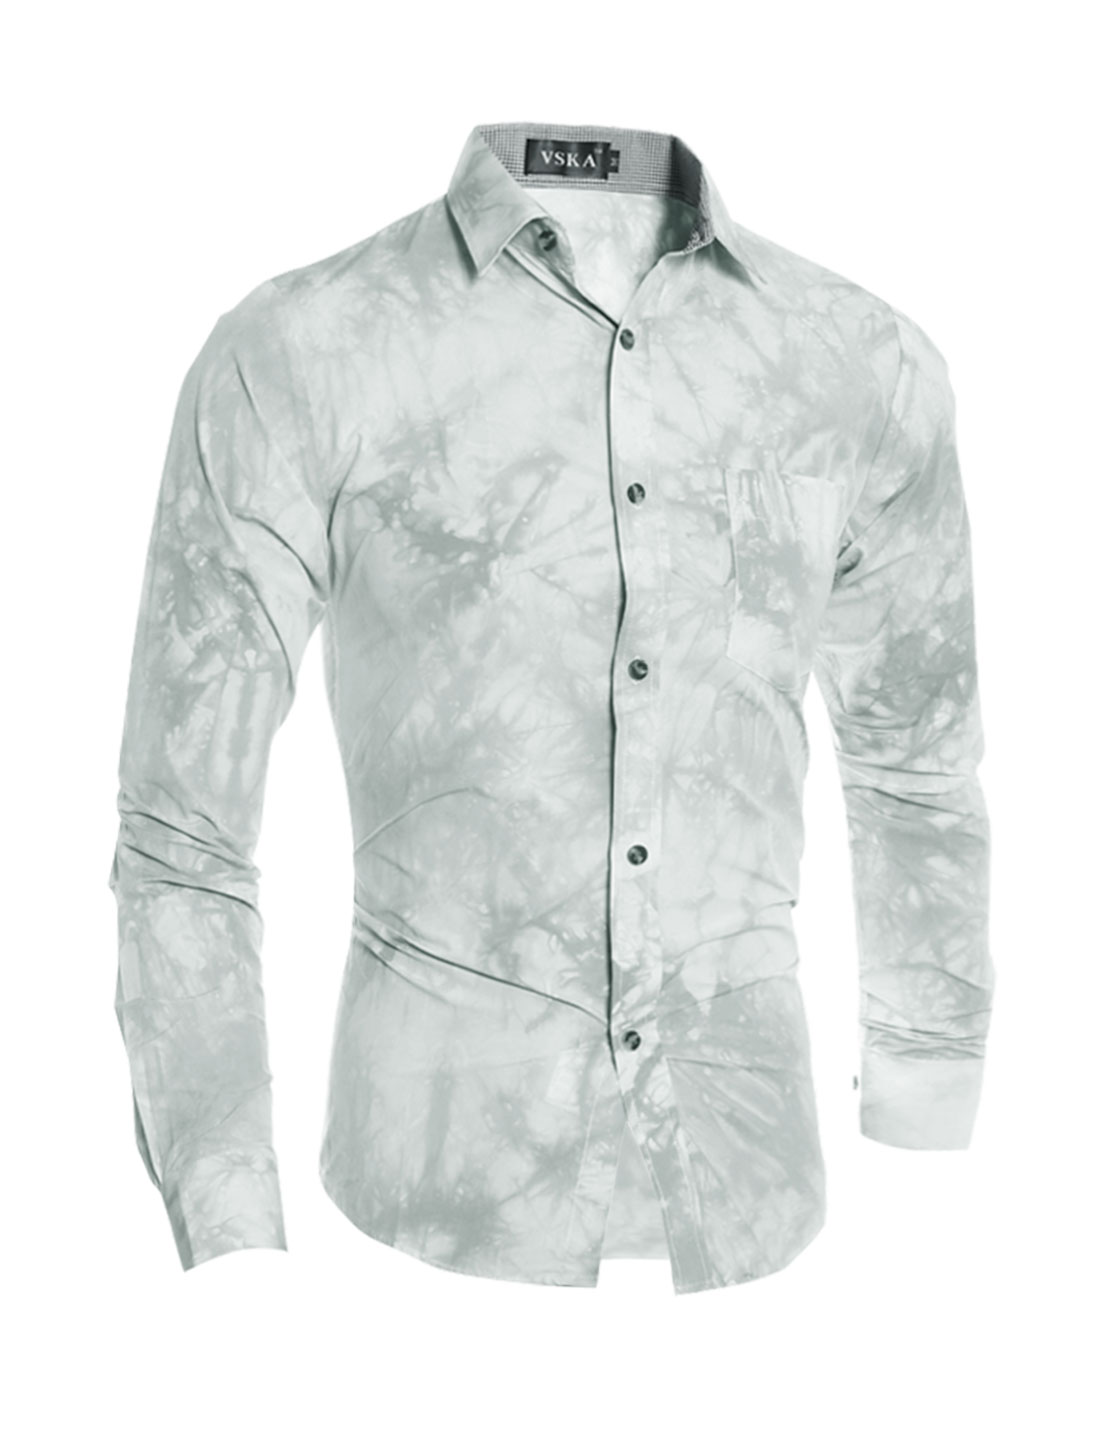 Men Collared Tie-Dye Slim Fit Shirt w Pocket Gray S